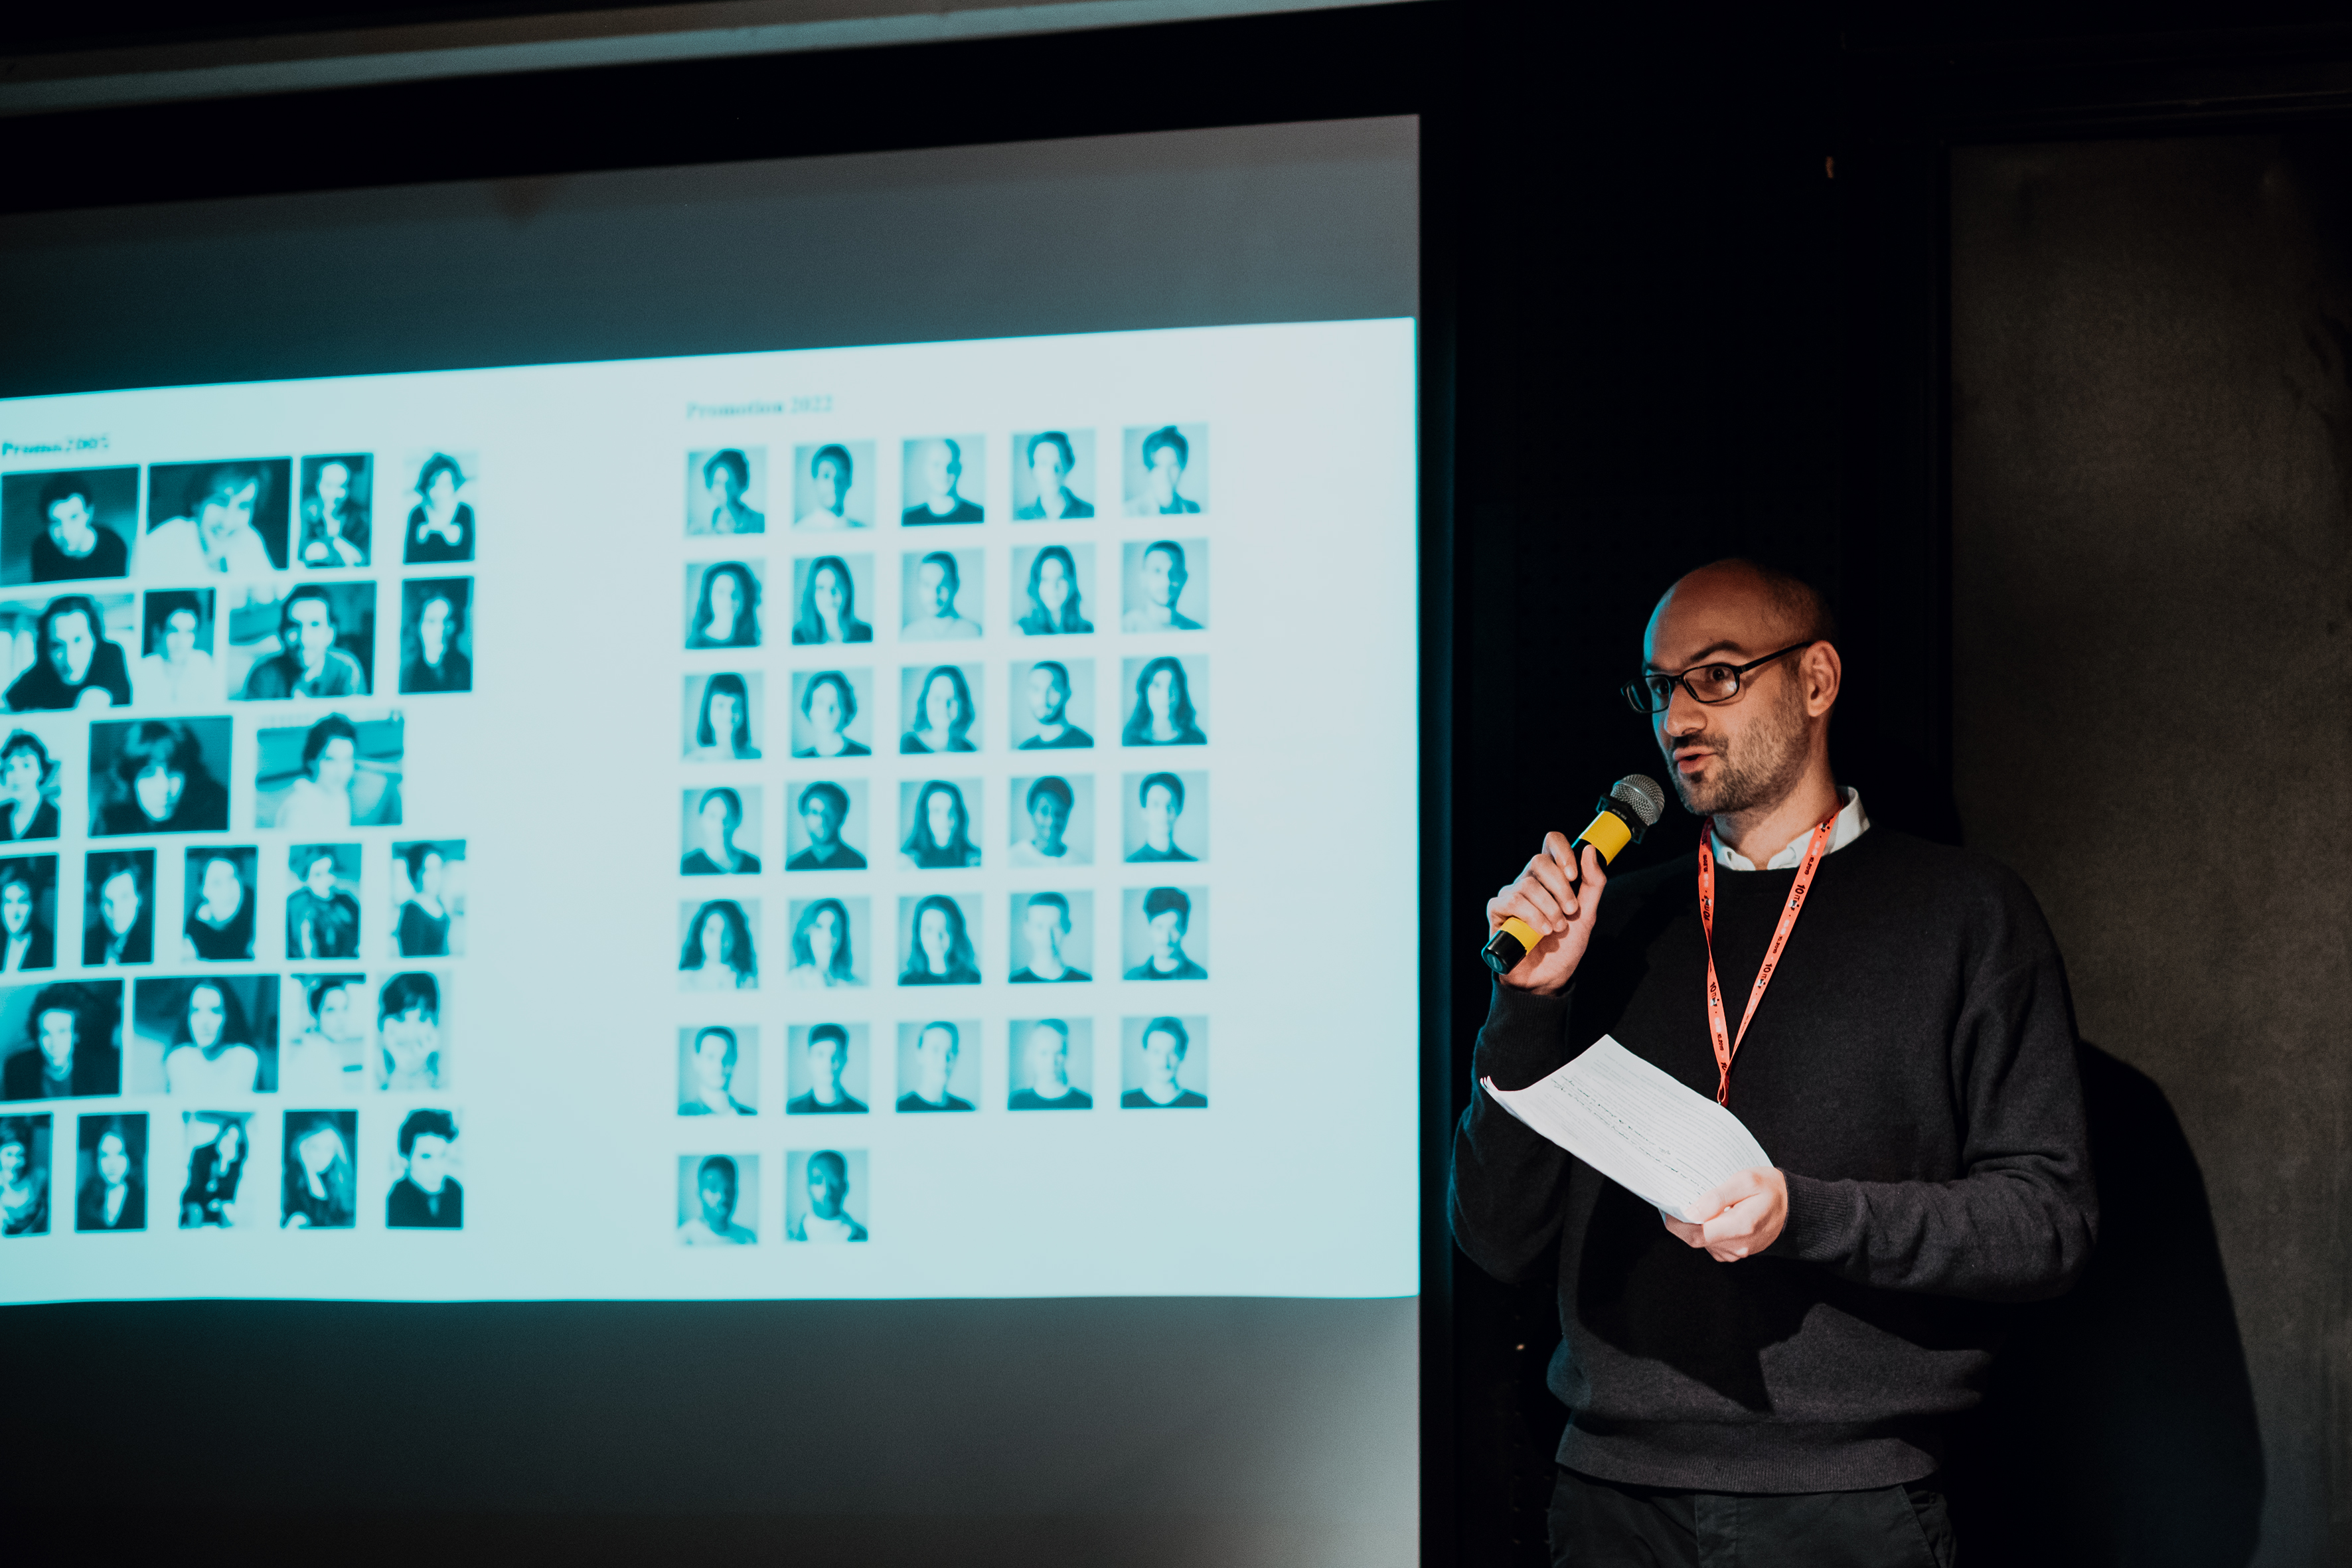 Elliot Marès during the 'Change - now!' conference, Teatr Ochoty, Warsaw, 7 October 2019, photo: Marta Ankiersztejn